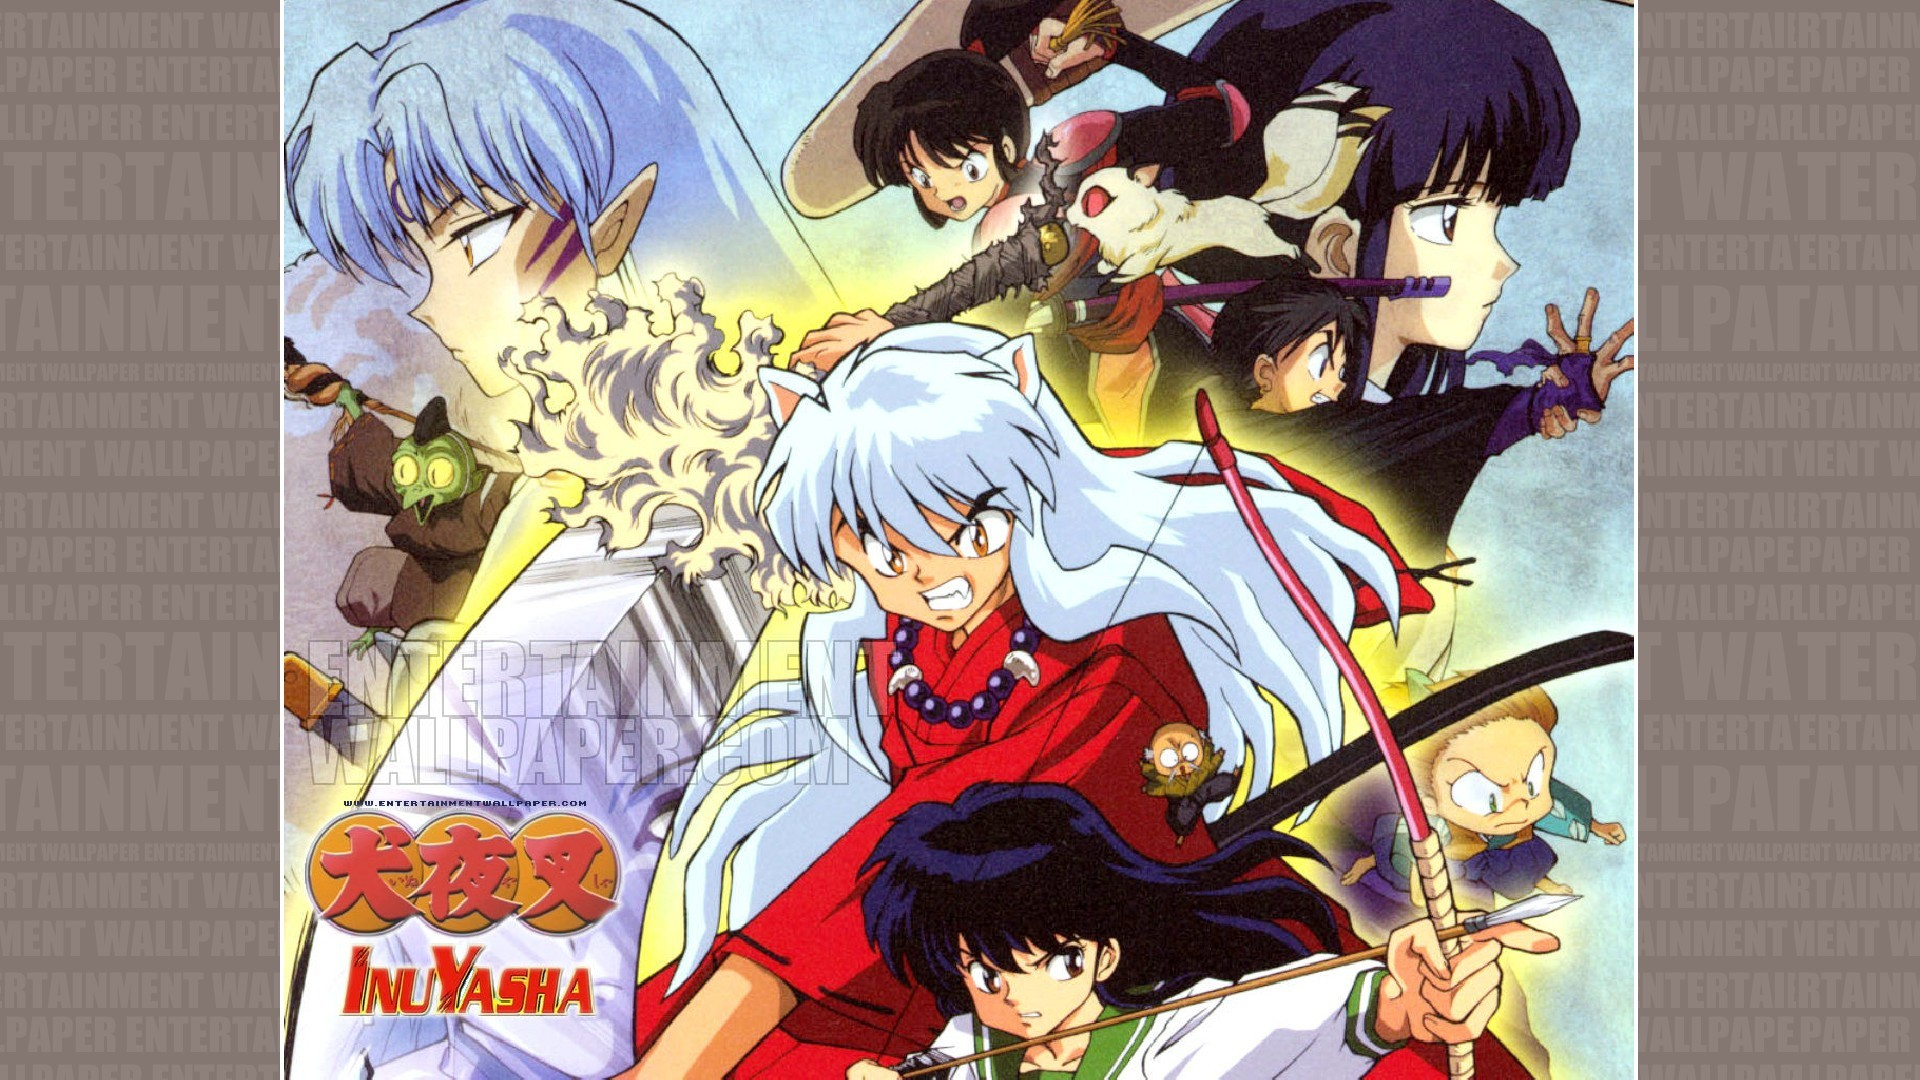 1920x1080 Inuyasha Wallpaper - Original size, download now.